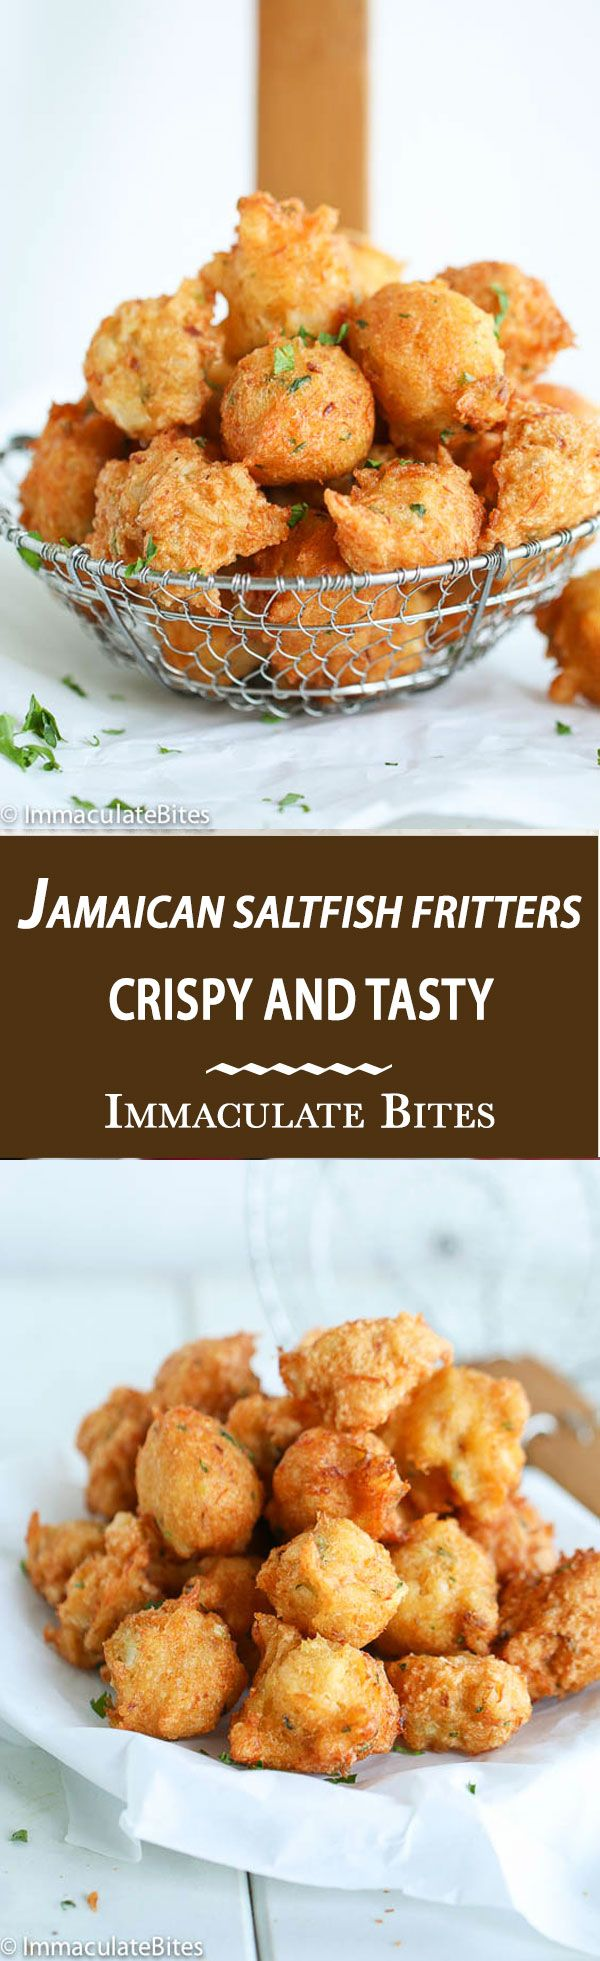 Spiced Jamaican Saltfish fritters – Crispy on the outside and soft on the inside a tastebud sensation!